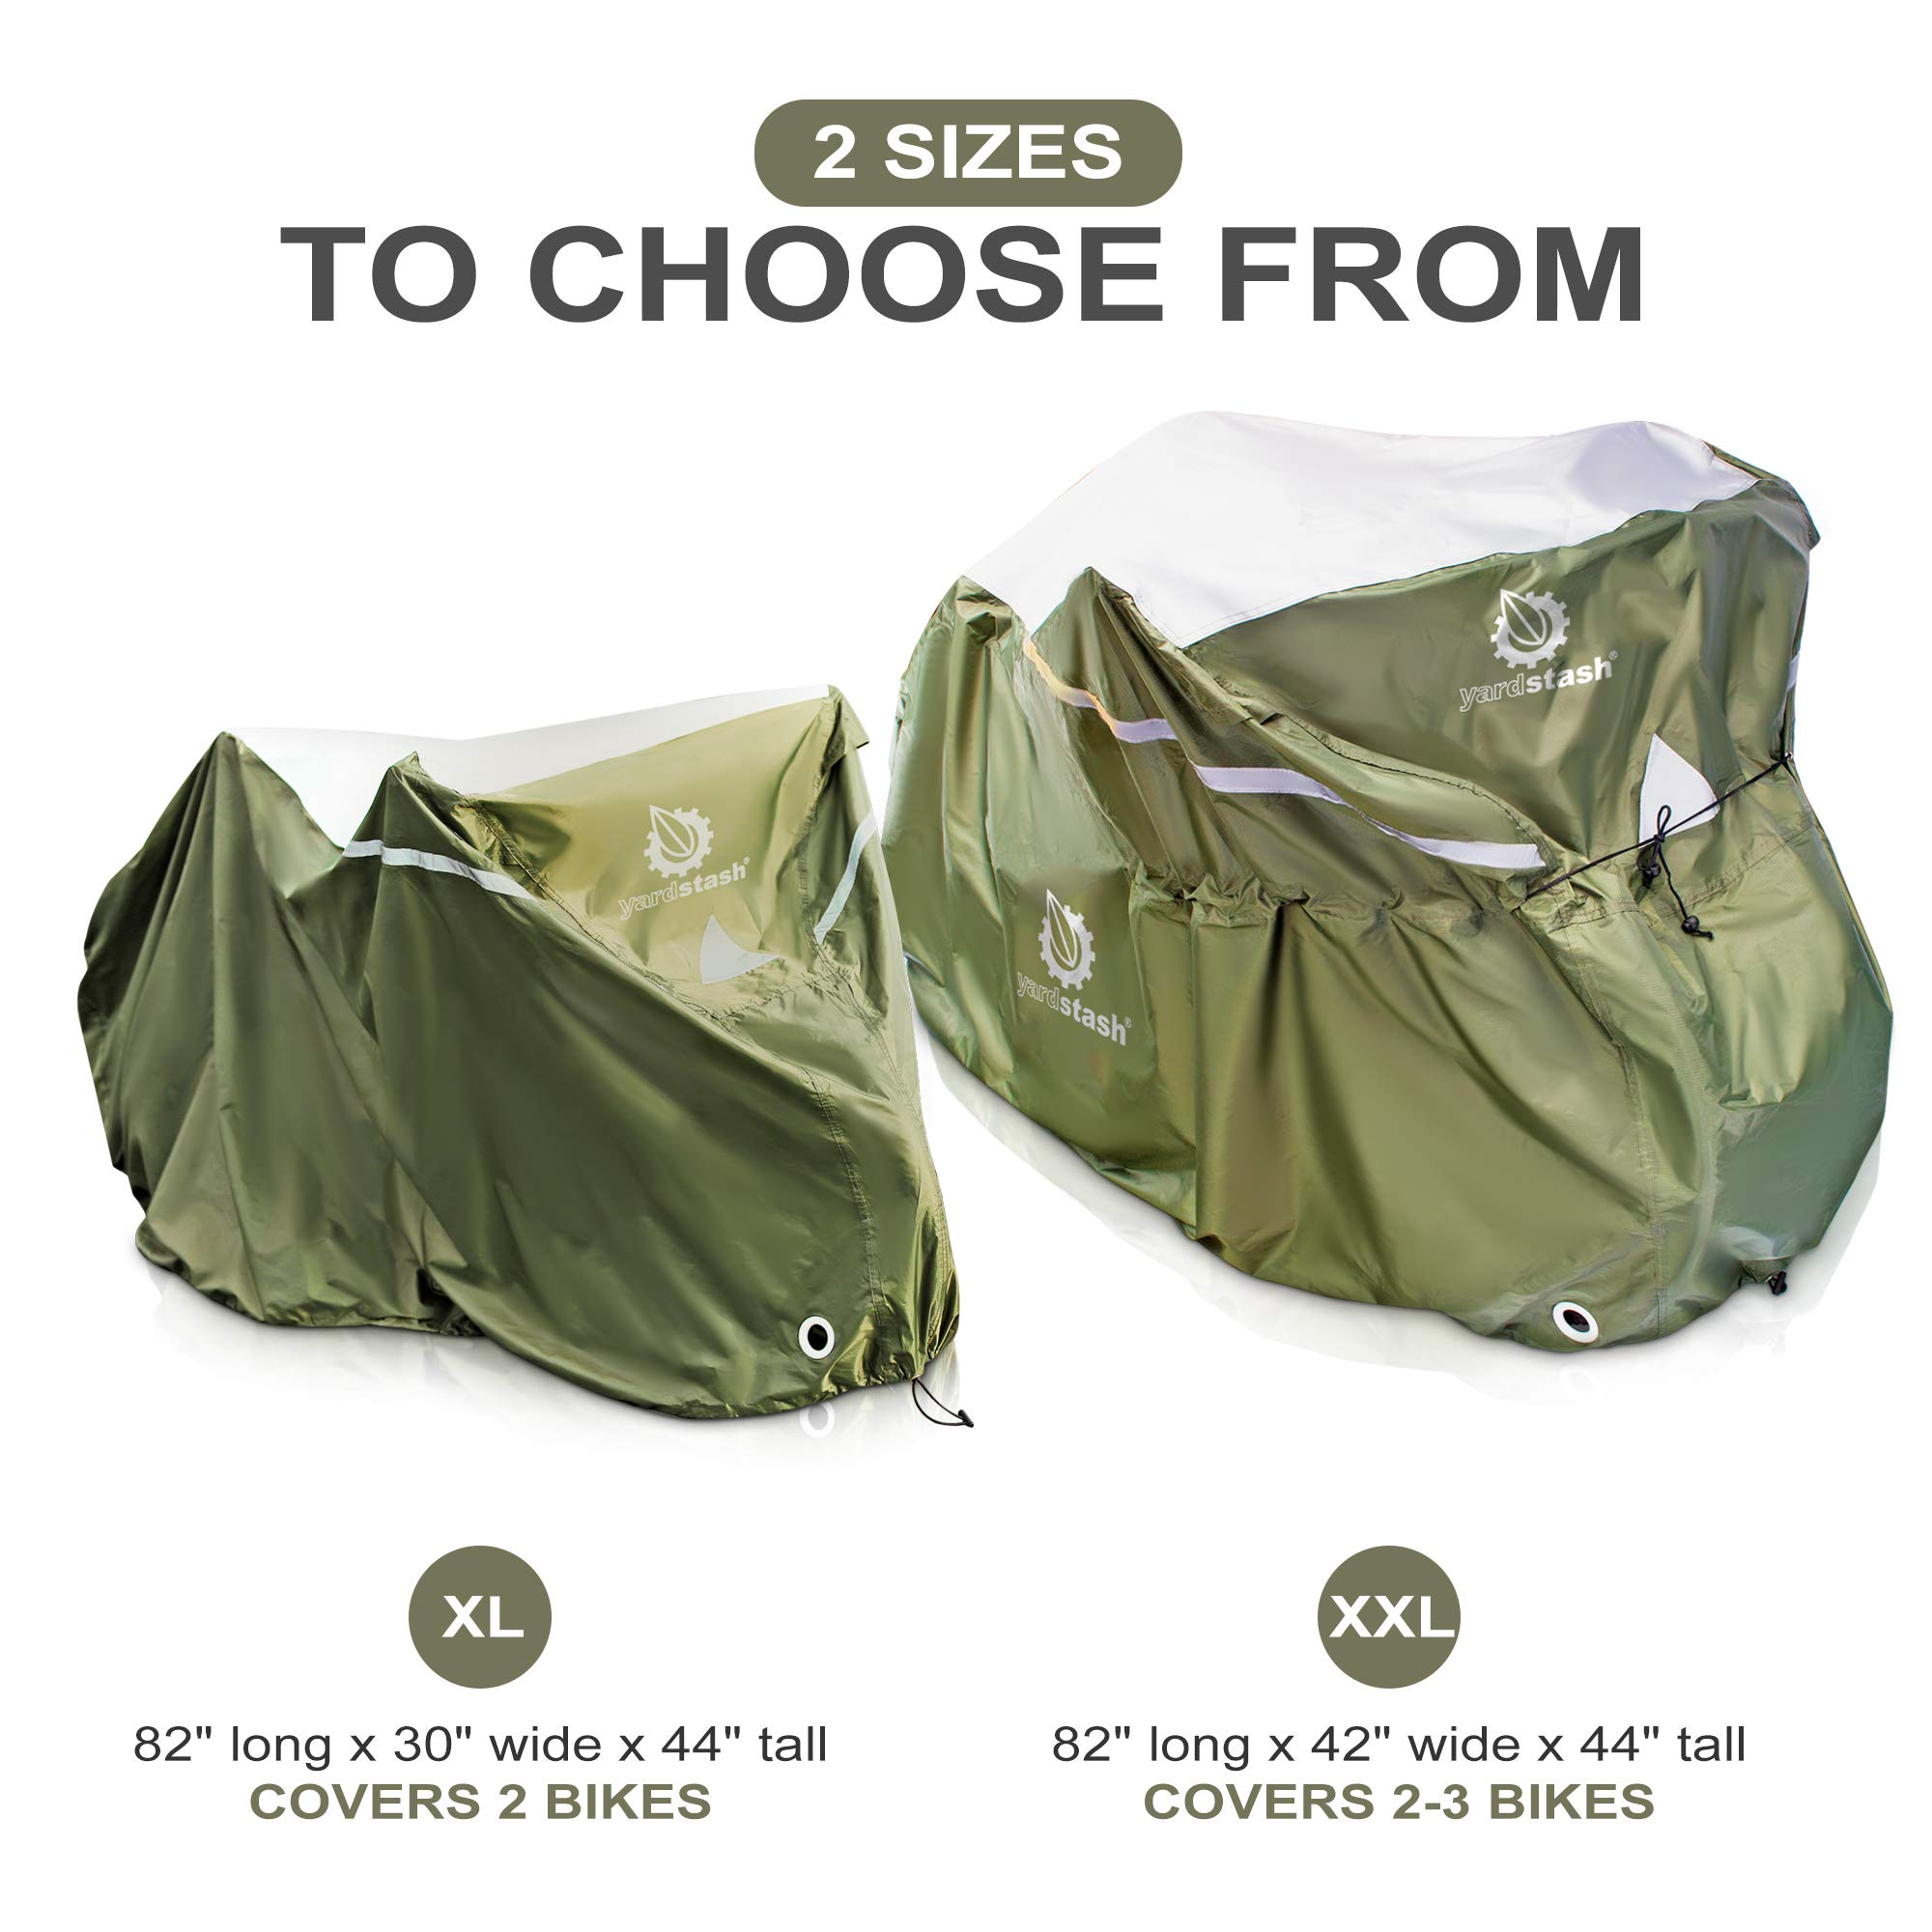 YardStash Bicycle Cover XL: Extra Large Size for Beach Cruiser Cover, 29er Mountain Bike Cover, Electric Bike Cover, Multiple Kids' Bike Cover and Cover for Bikes with Baskets, Child Seats or Racks by YardStash (Image #8)